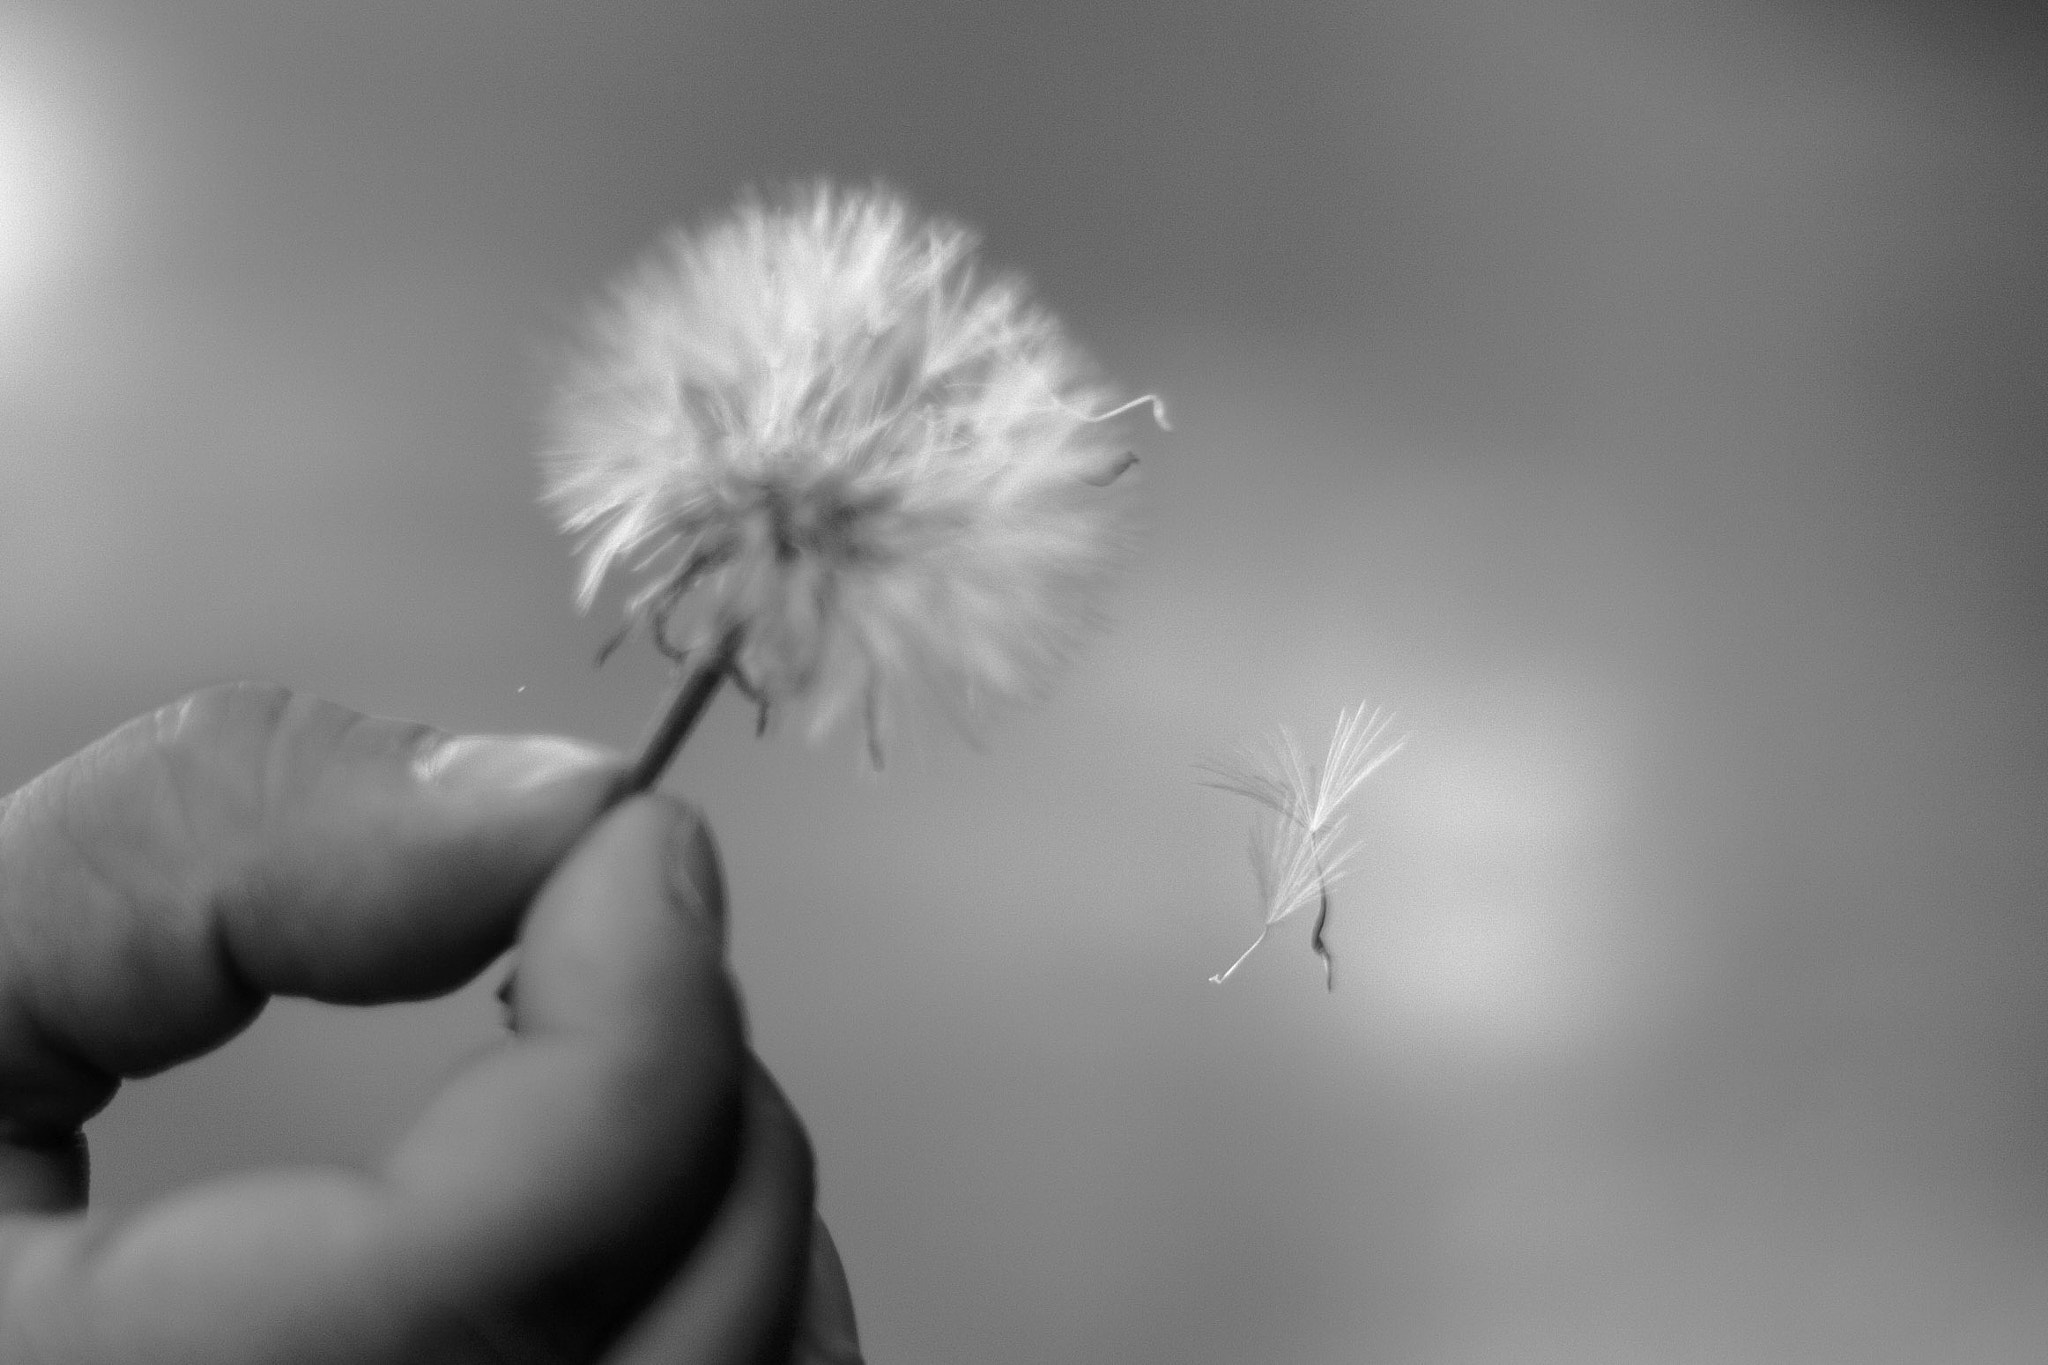 Photograph blow a wish by Rebeca Moncho on 500px